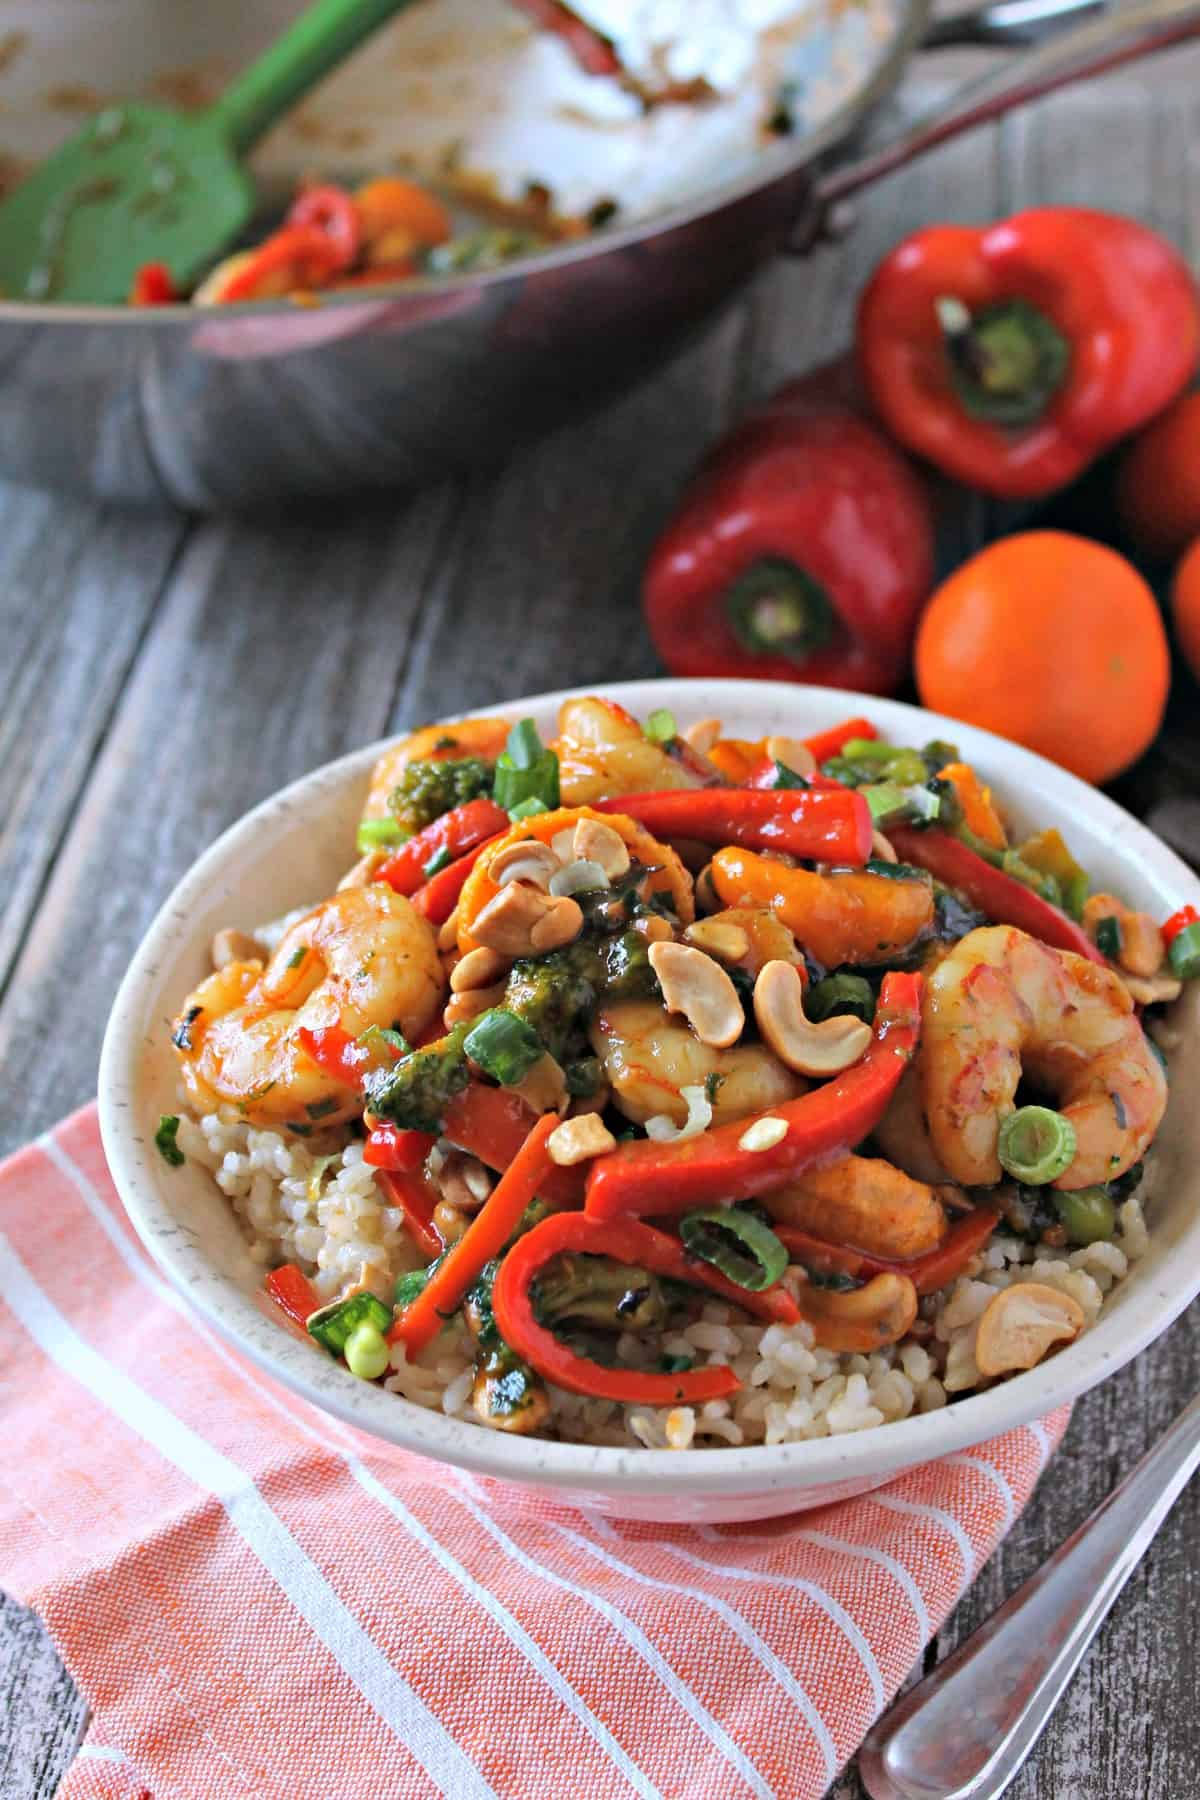 This easy shrimp and vegetable stir fry is bursting with colorful flavor. Florida tangerines and sweet peppers add pops of zest